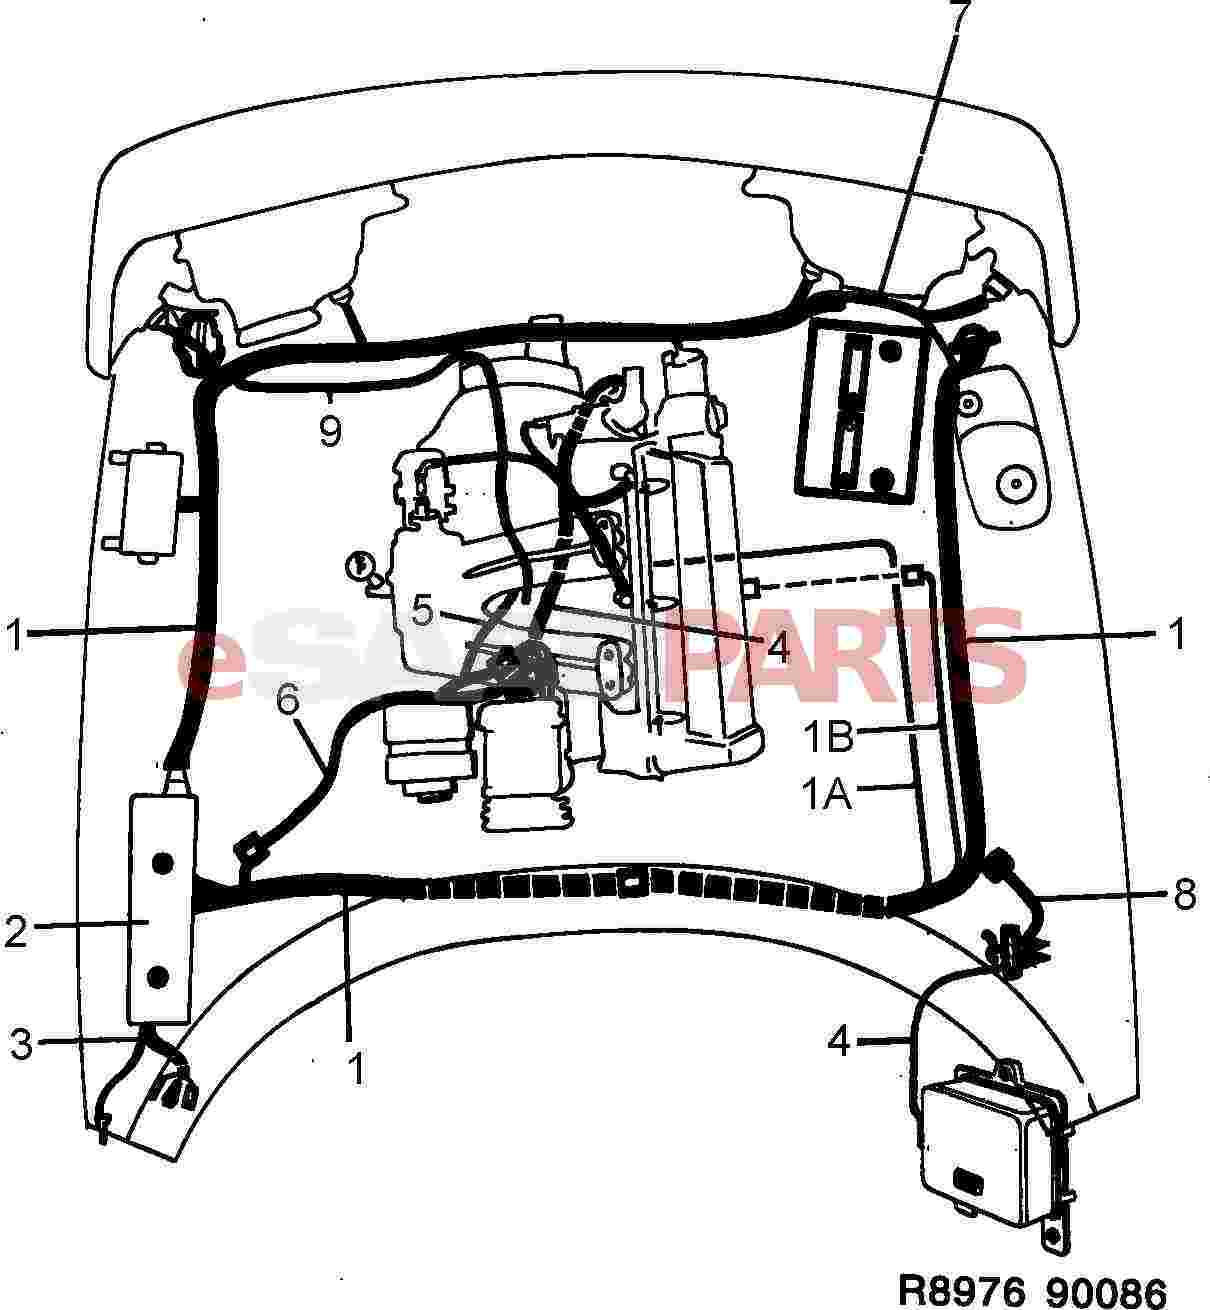 6bnnf Nissan Datsun Quest Need Diagram Fuse Box 2002 Nissan in addition Fuse Box Cables additionally 98 Volkswagen Jetta Gls The Ac And Cruise Wiring Diagram further 125813 How Do I Test The MAP Strange Results additionally 2003 Porsche Boxster Fuse Box Diagram. on saab 9 3 radio diagram